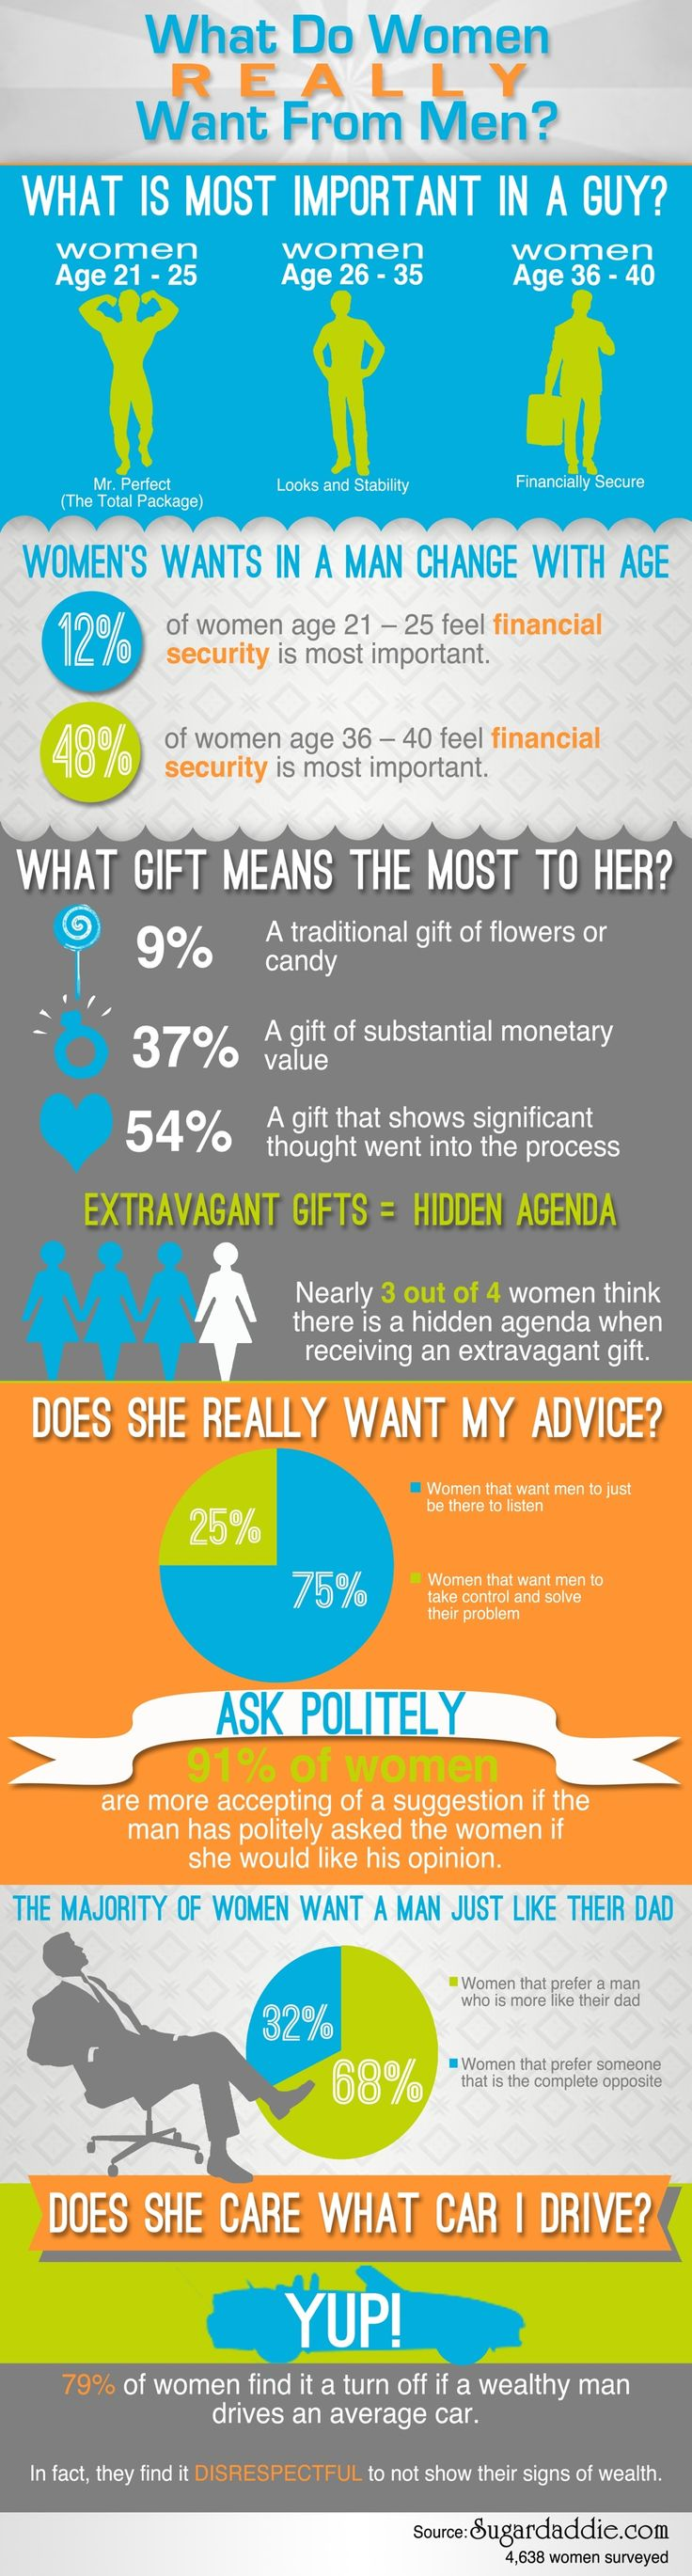 What Do Women Really Want From Men? Over 4,000 Women were interviewed...what do you think??